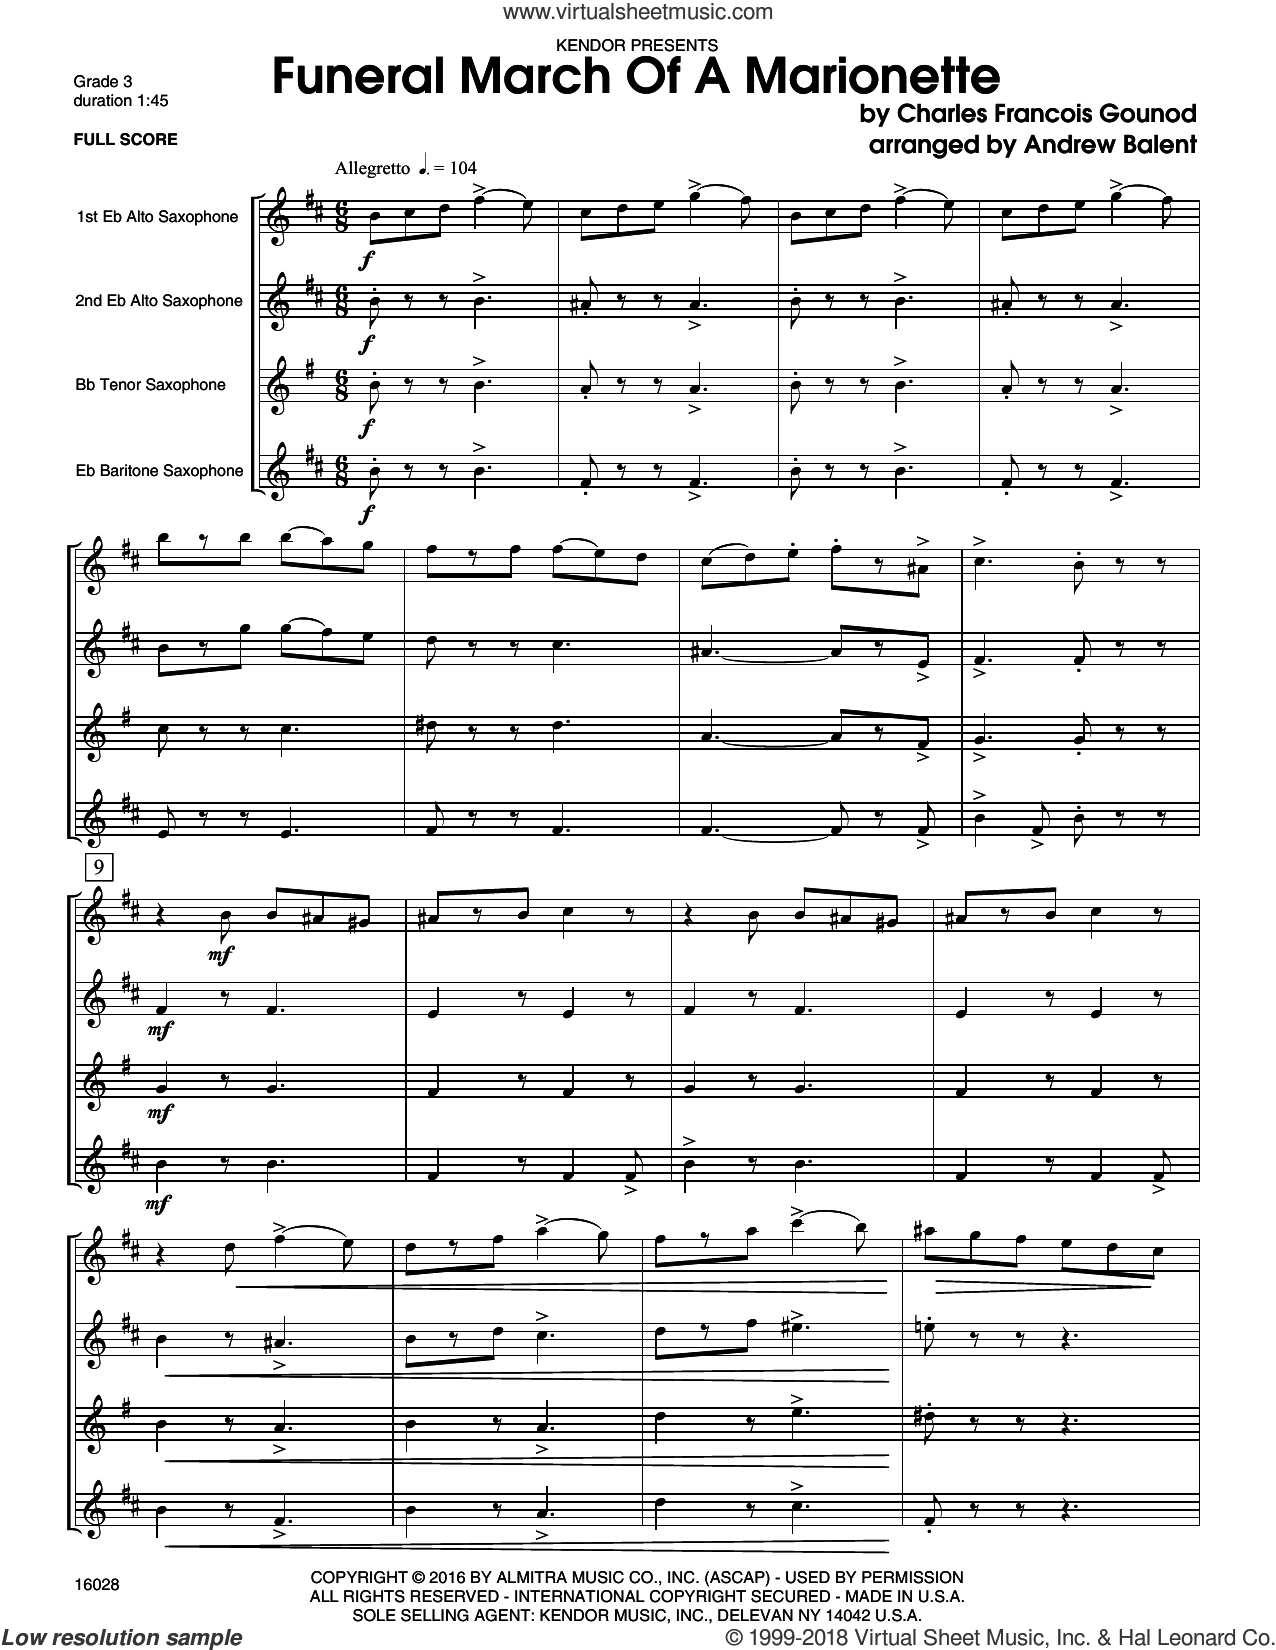 Funeral March Of A Marionette (COMPLETE) sheet music for saxophone quartet by Charles Gounod and Balent, intermediate saxophone quartet. Score Image Preview.